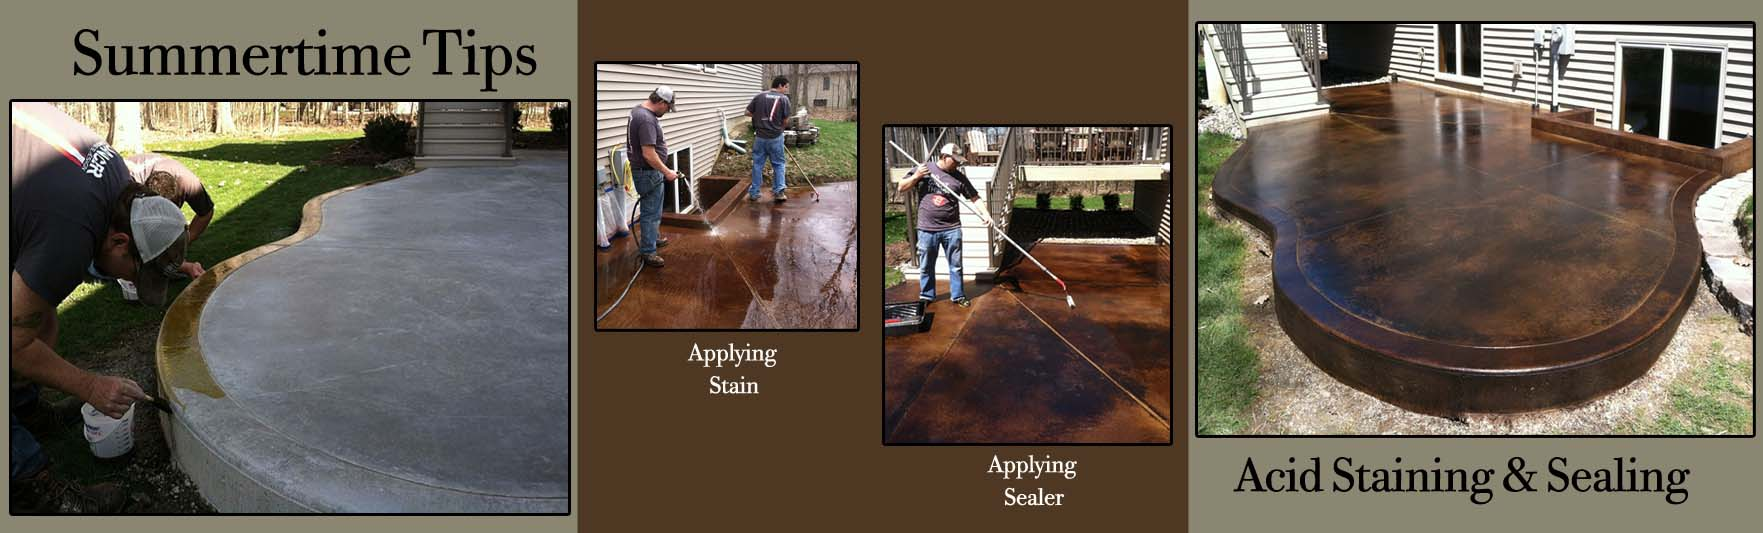 Podcast: Podcast: Tips for Acid Stain and Sealer Coverage on Outdoor Projects